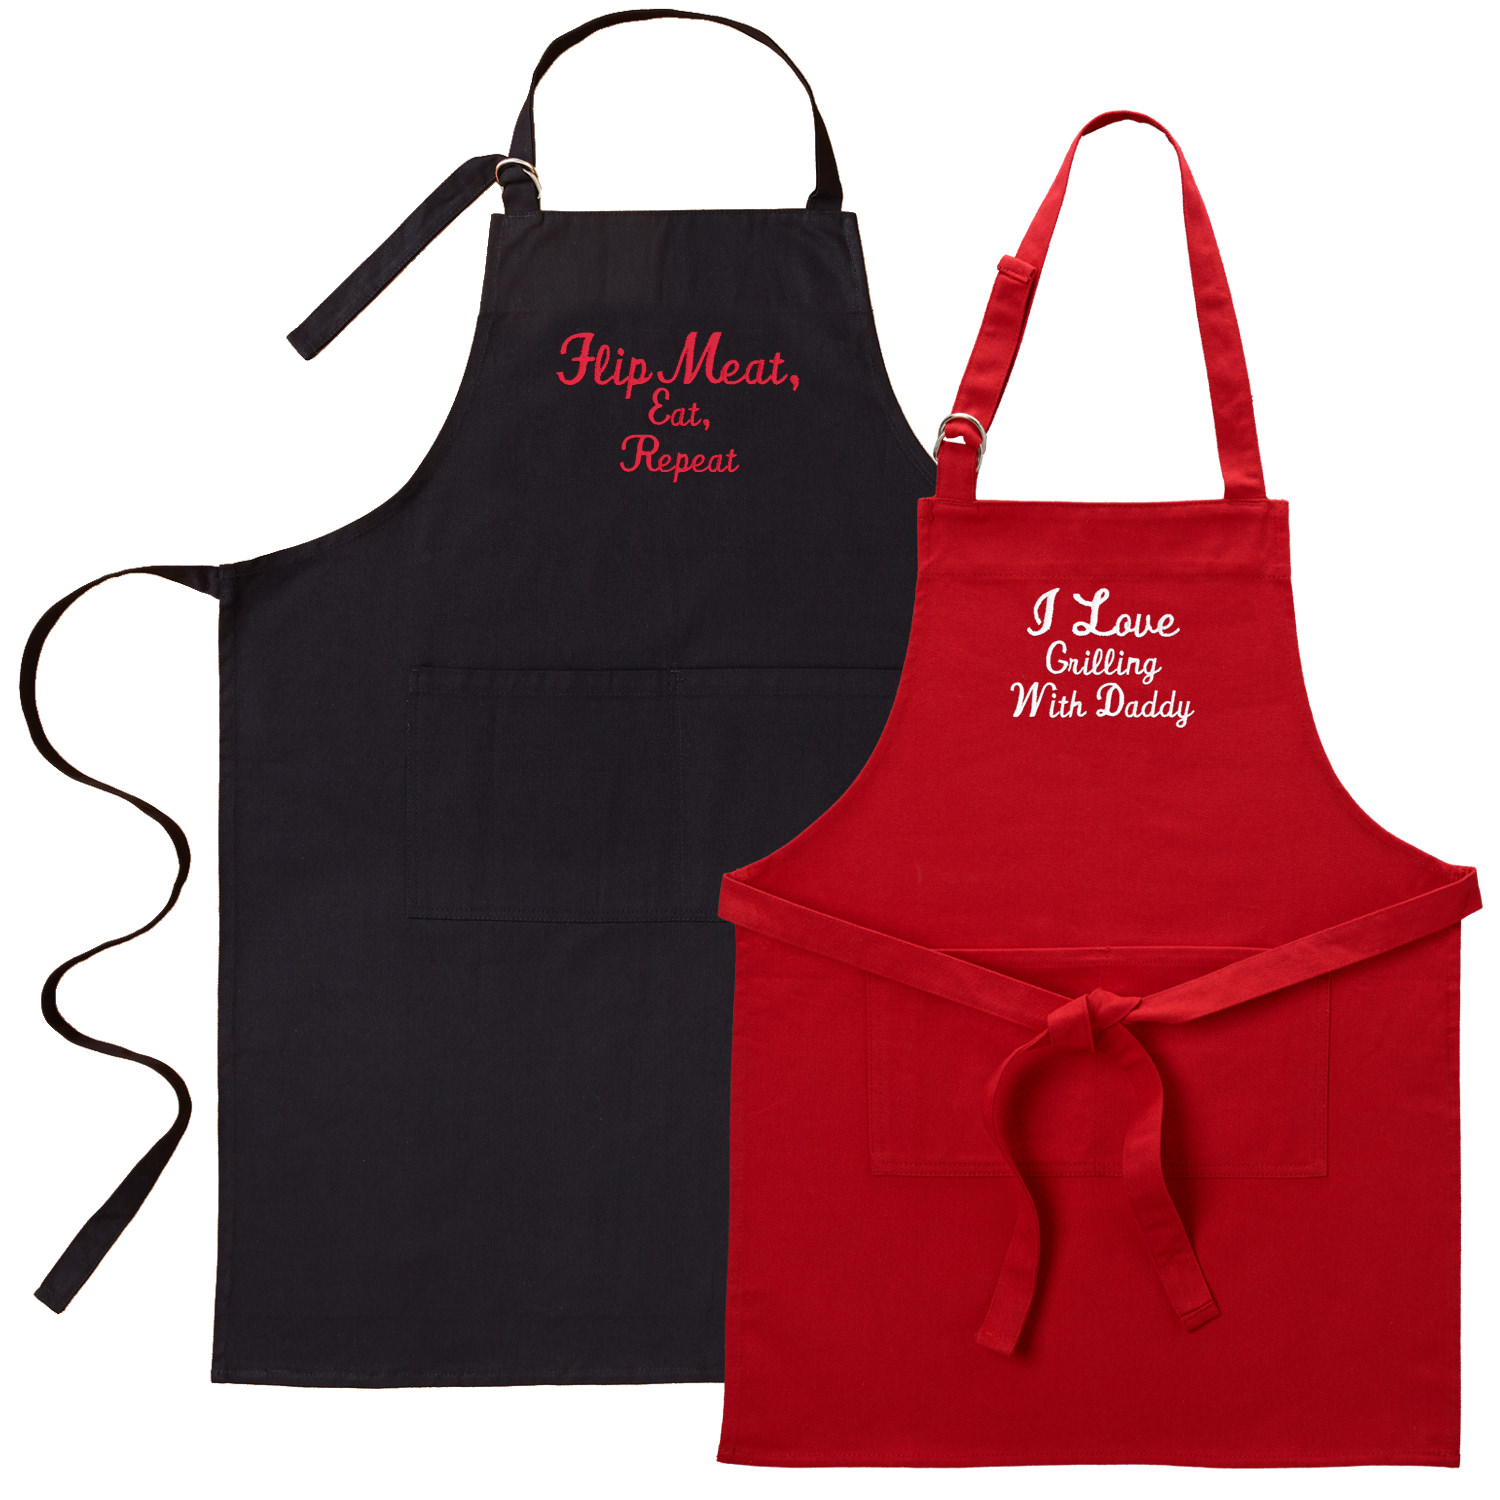 Personalized Family Fun Embroidered Grill Apron Set - Black Adult/Red Youth Available in 2 Colors and 2 Fonts